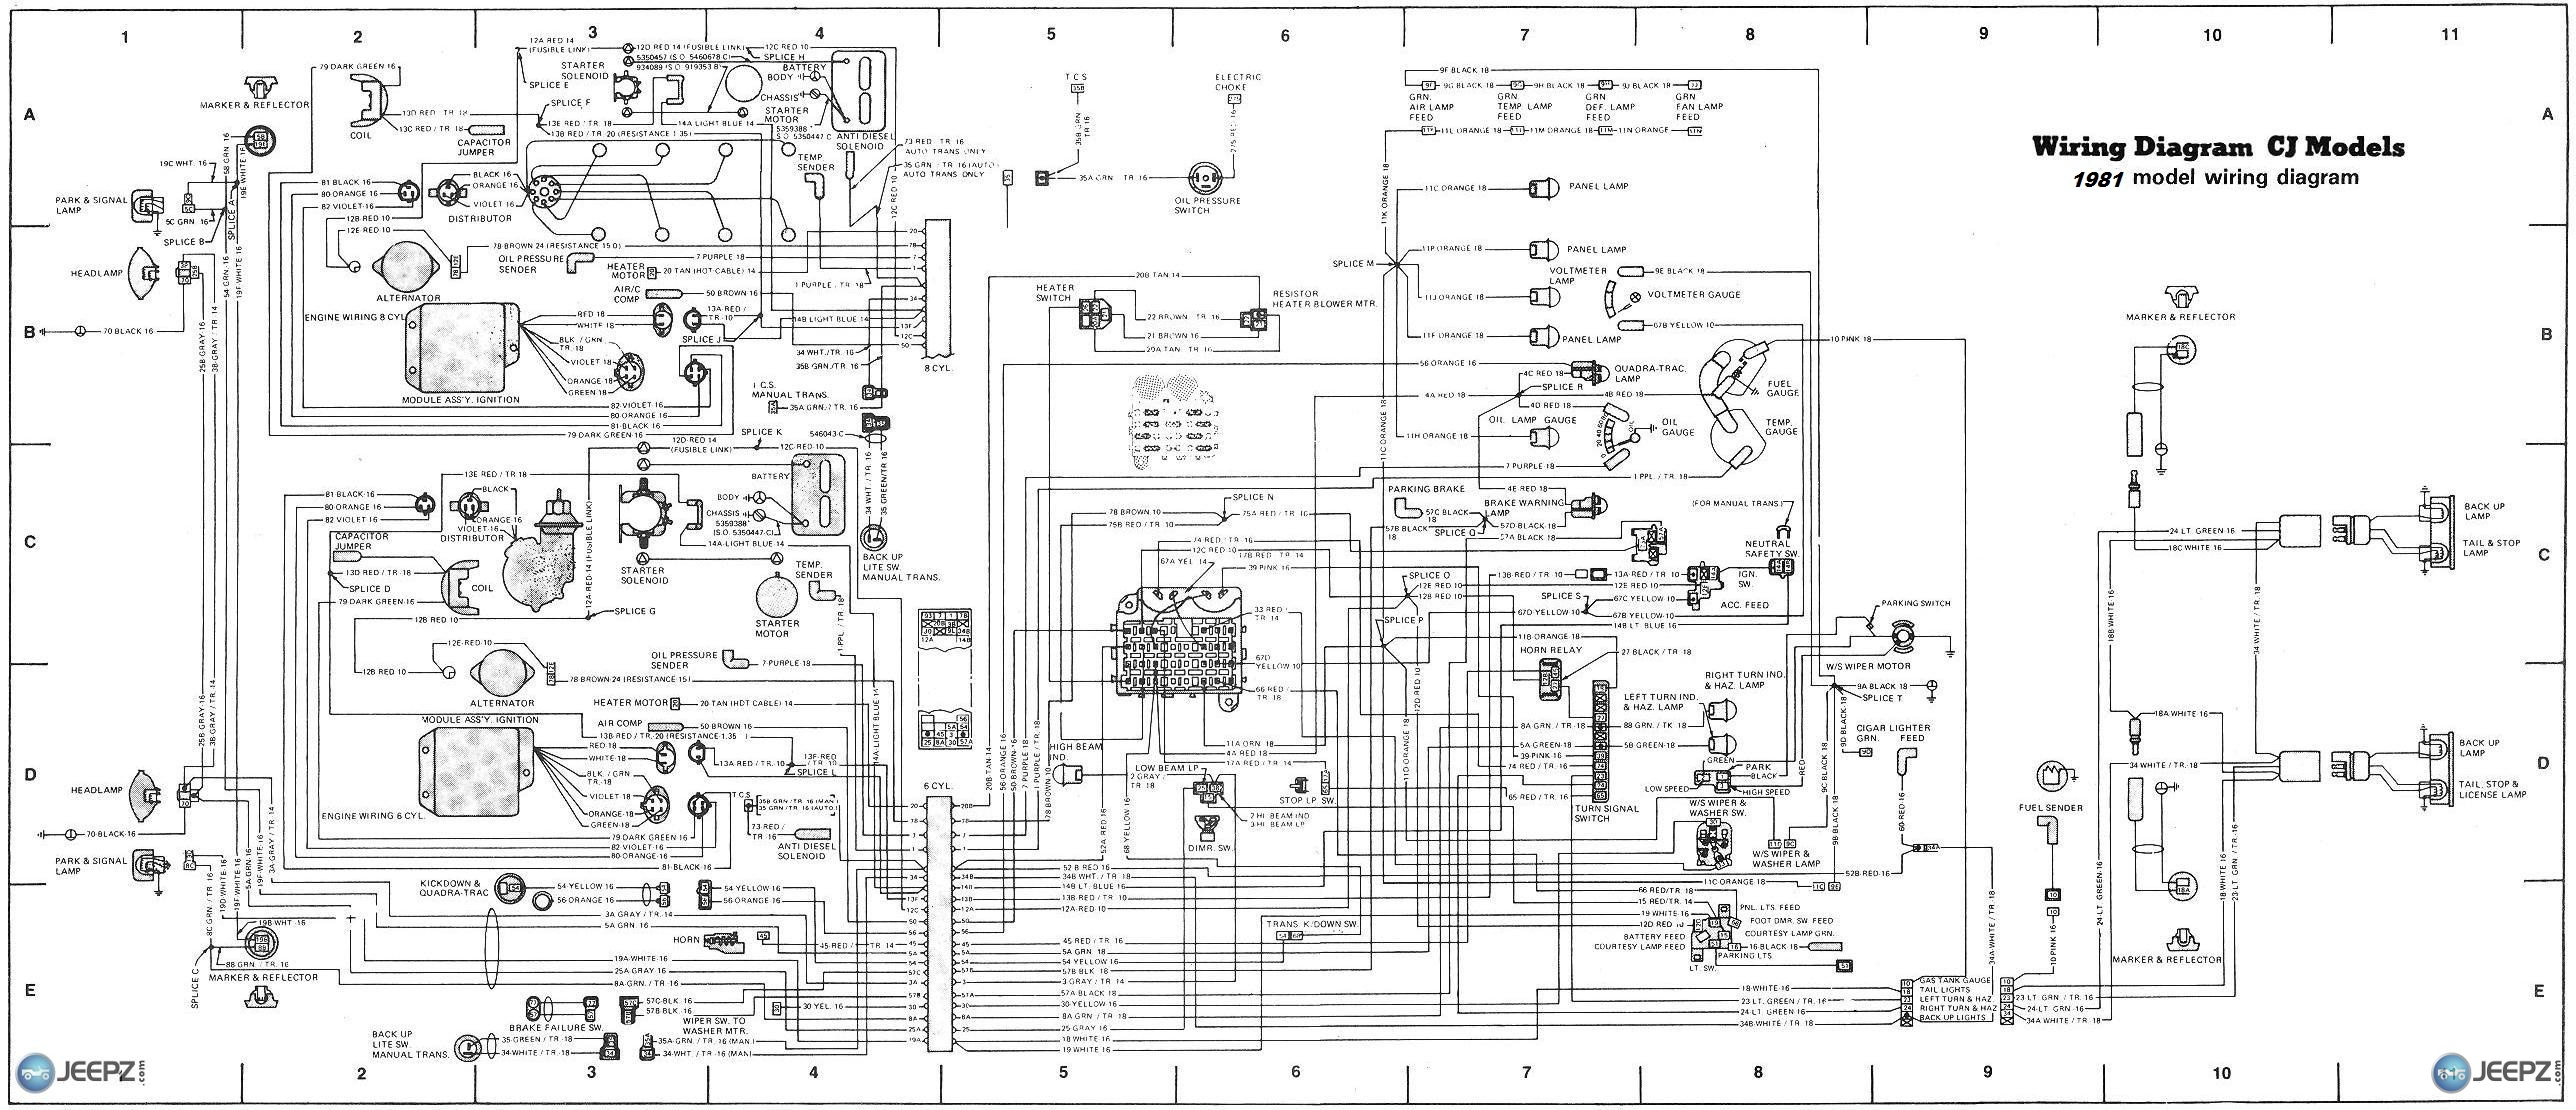 wiring diagram for cj8 wiring diagram source tools for wiring 1981 jeep cj8 wiring diagram wiring [ 2576 x 1110 Pixel ]